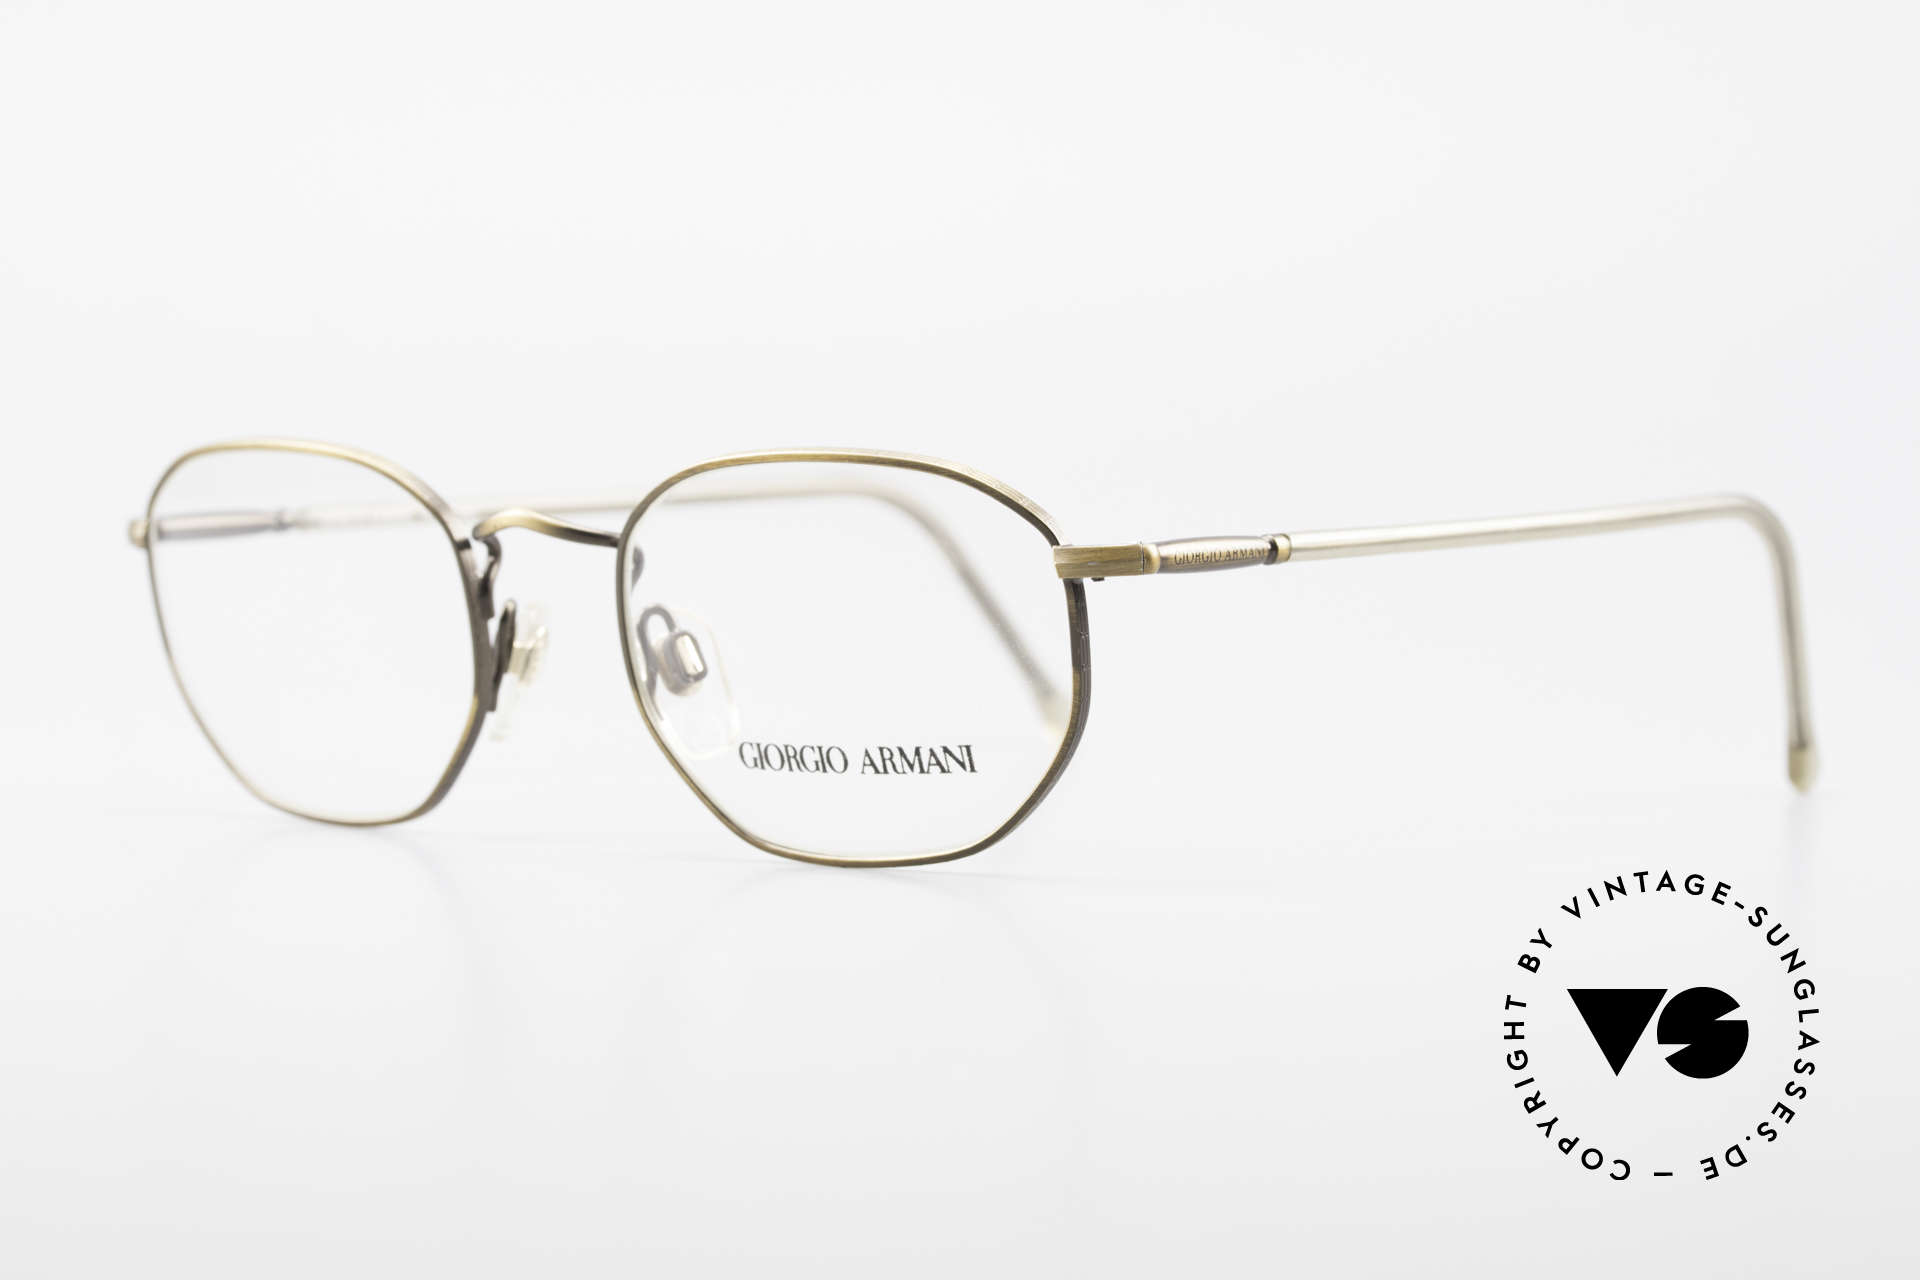 "Giorgio Armani 187 Classic Men's Eyeglasses 90's, brilliant frame finish in a kind of ""antique gold""/brass, Made for Men"